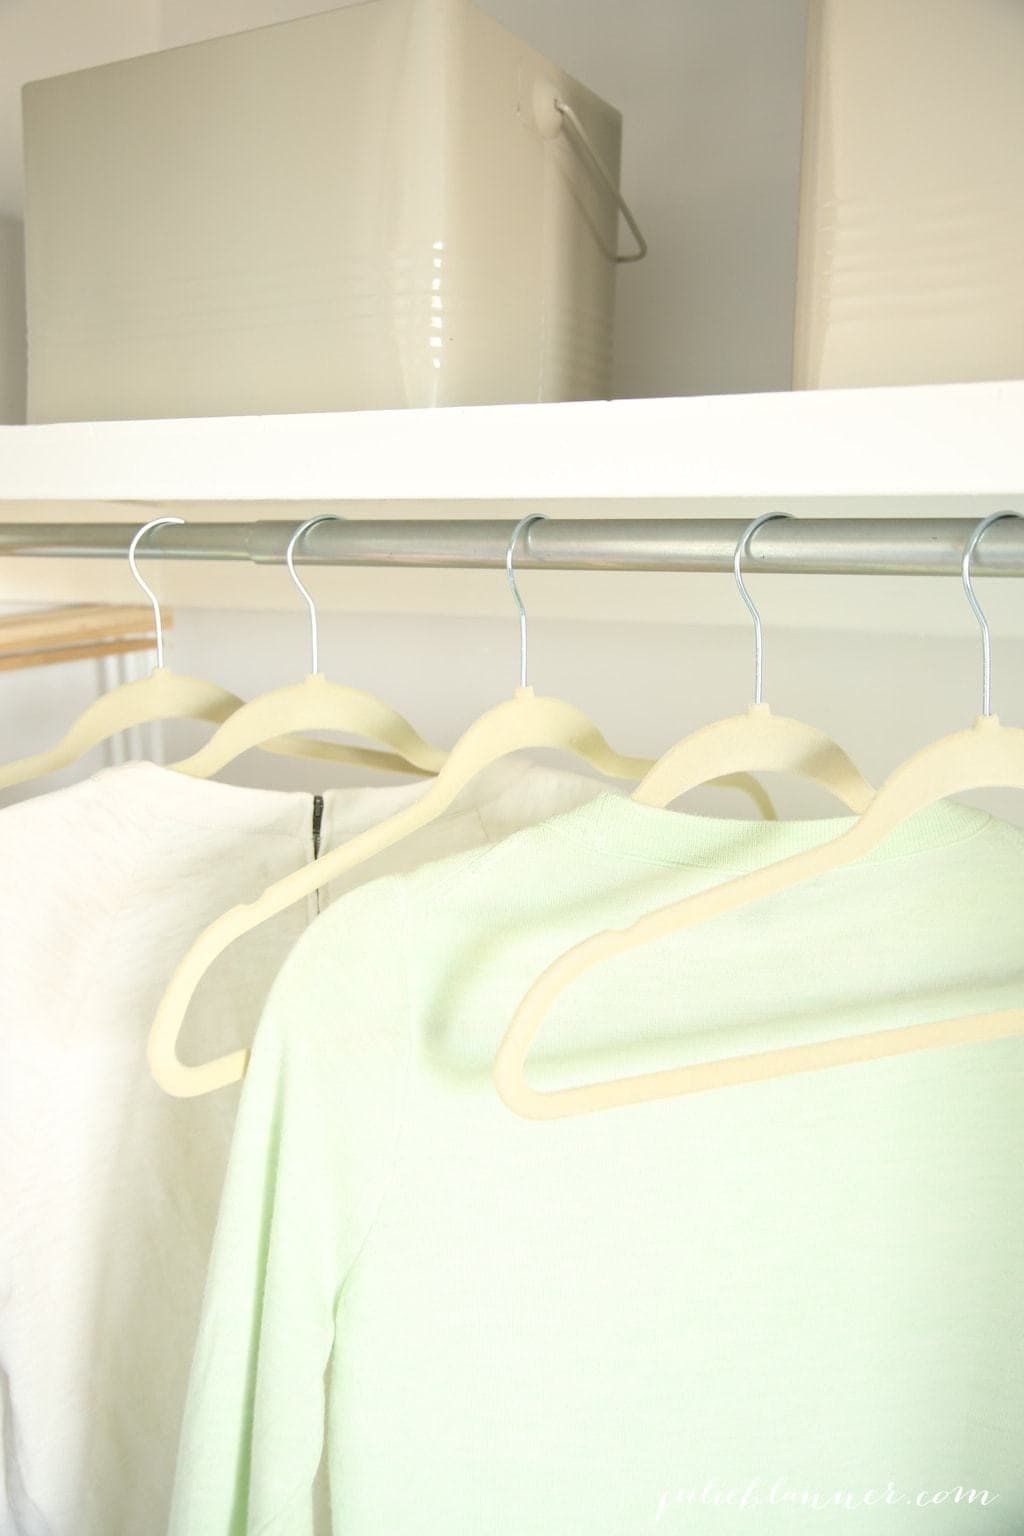 A closet with bins for cleaning supplies and more organization ideas.